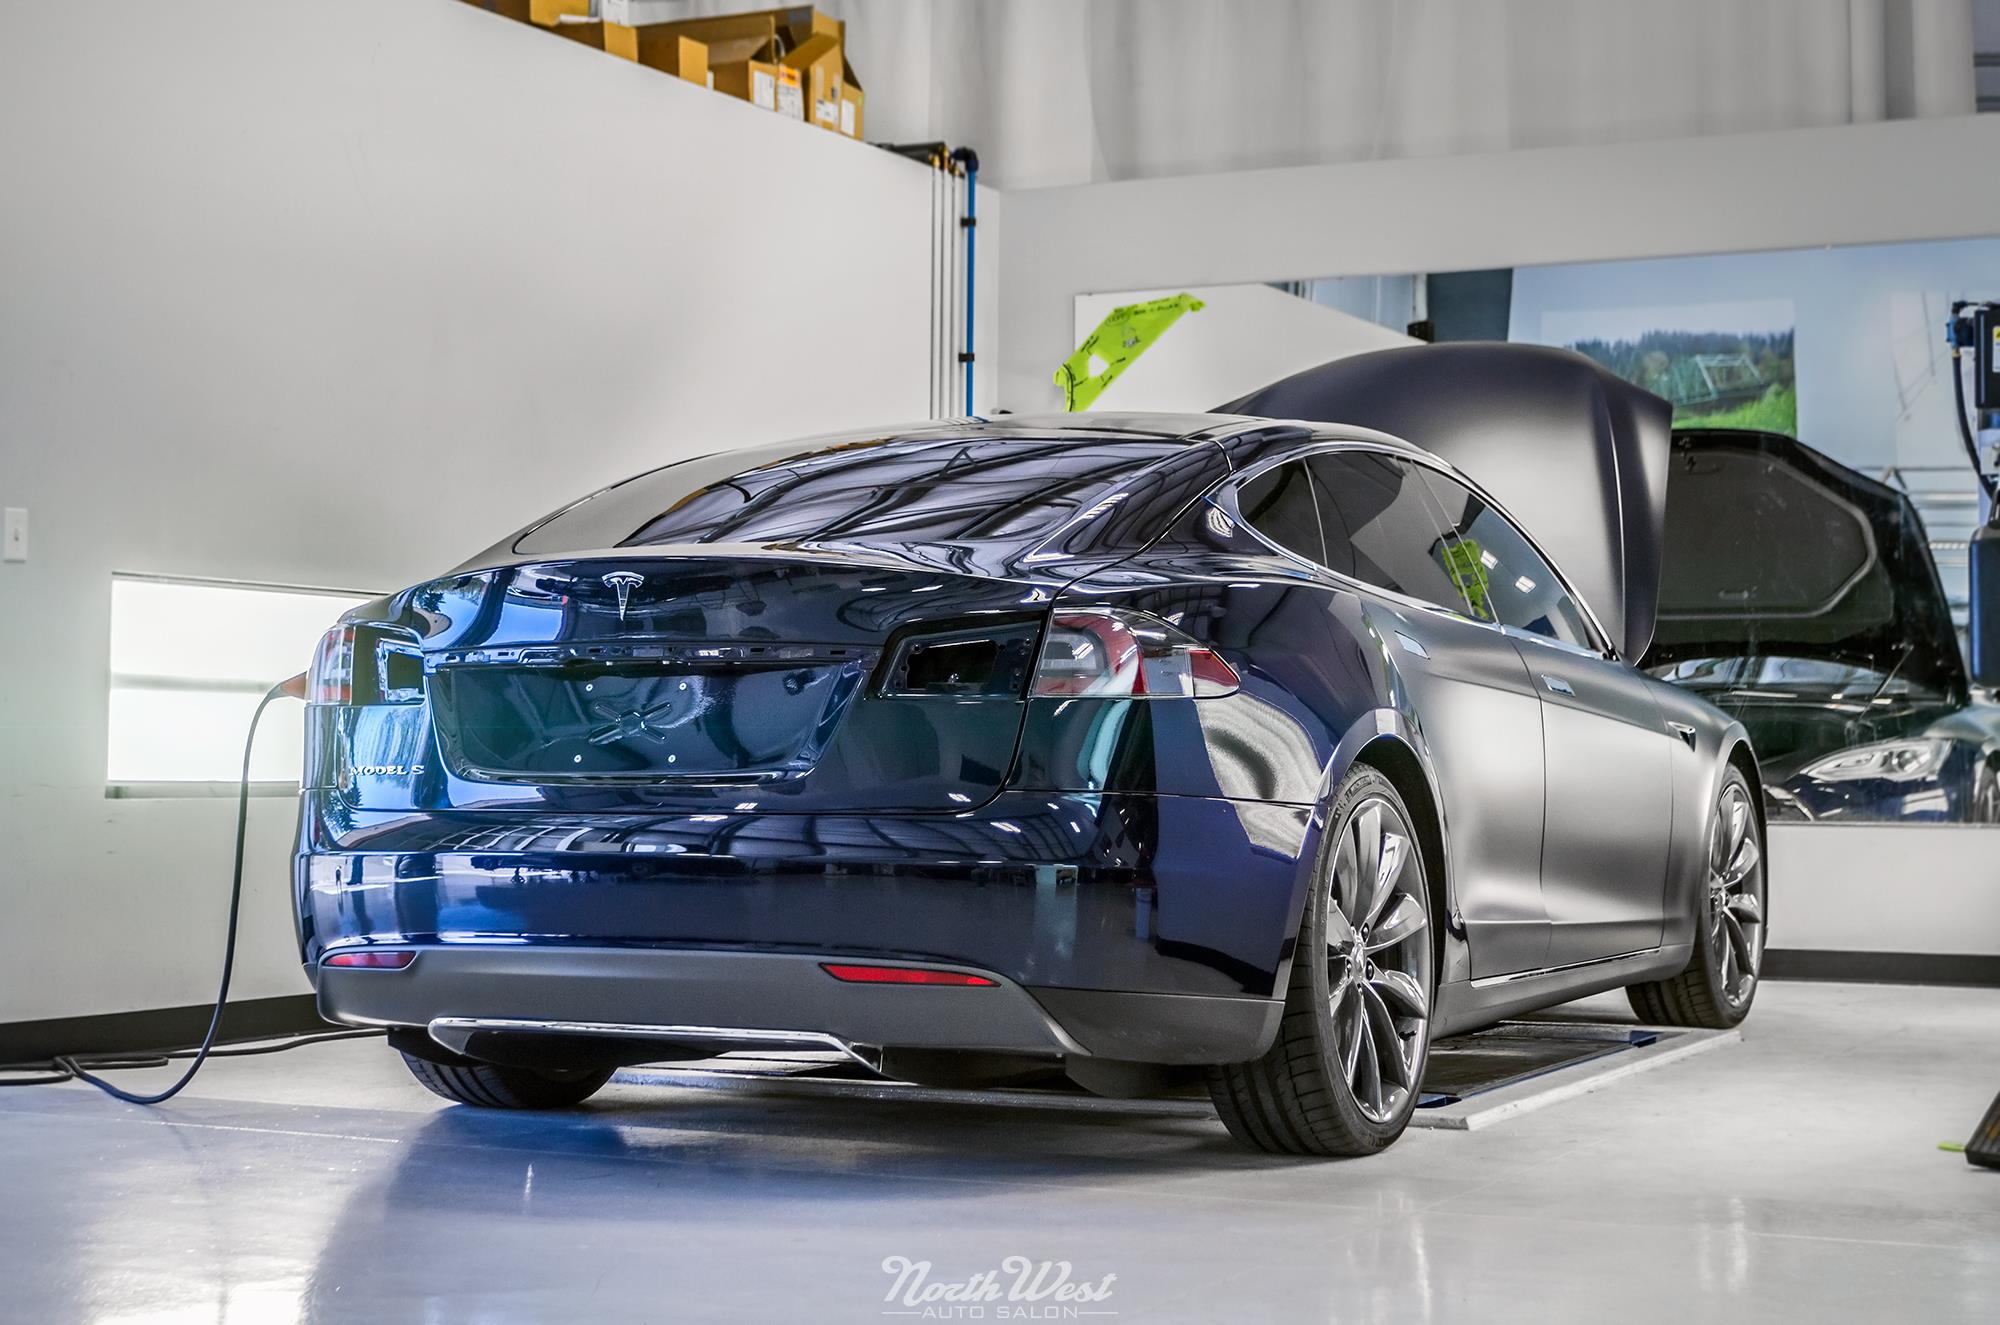 NWAS Tesla Model S vehicle wrap in satin XPEL Stealth paint protection film